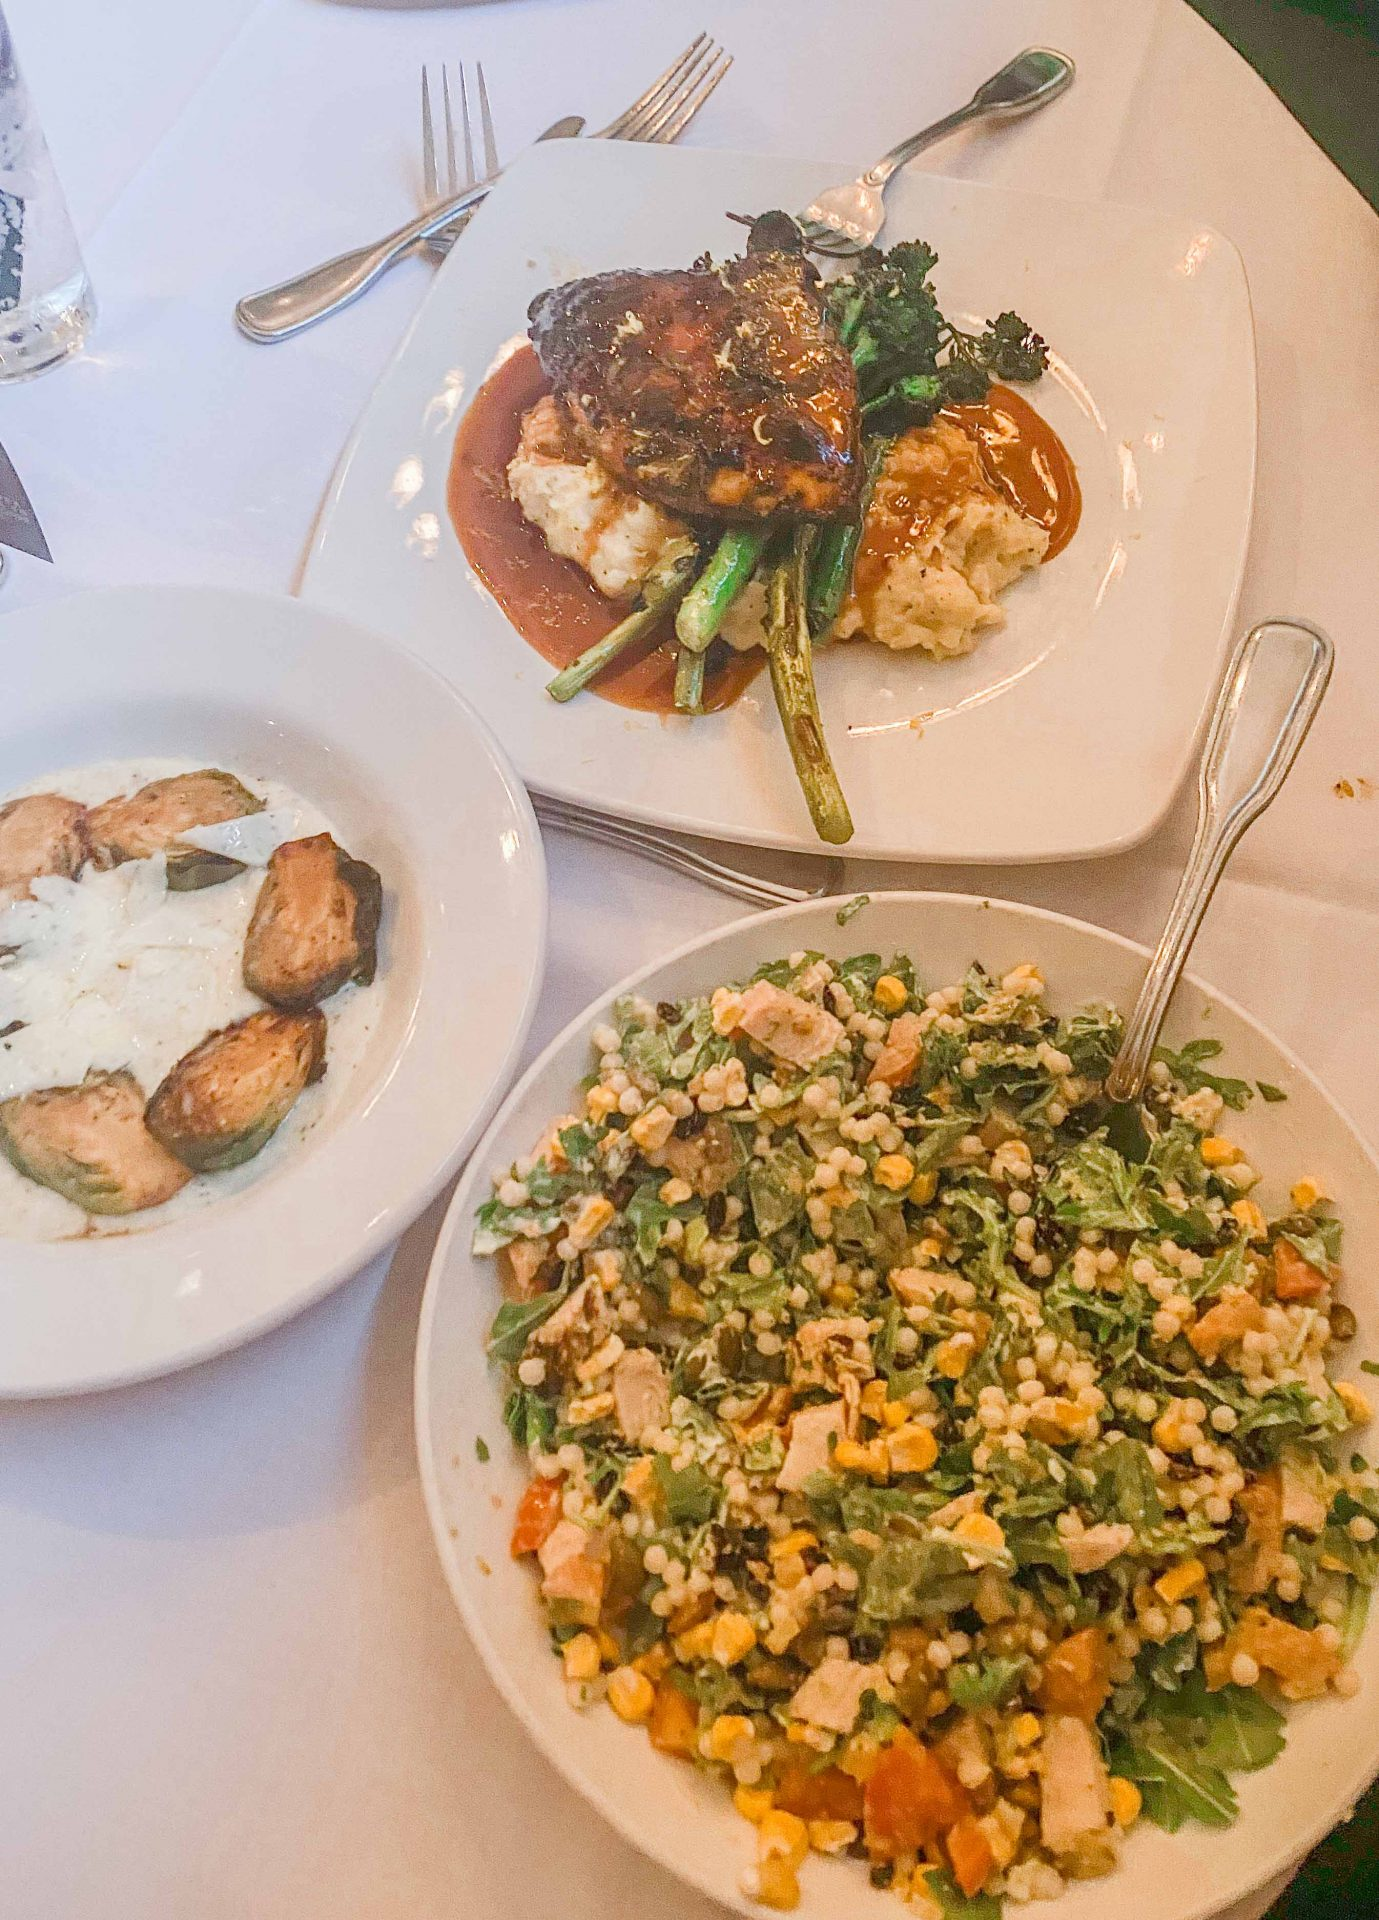 hulas modern tiki bar, Thai bowl, cabbage, Thai sauce, best place to eat in scottsdale, brunch, lunch, the best food in scottsdale Arizona, delicious meals, blog, travel guide to scottsdale, where to eat